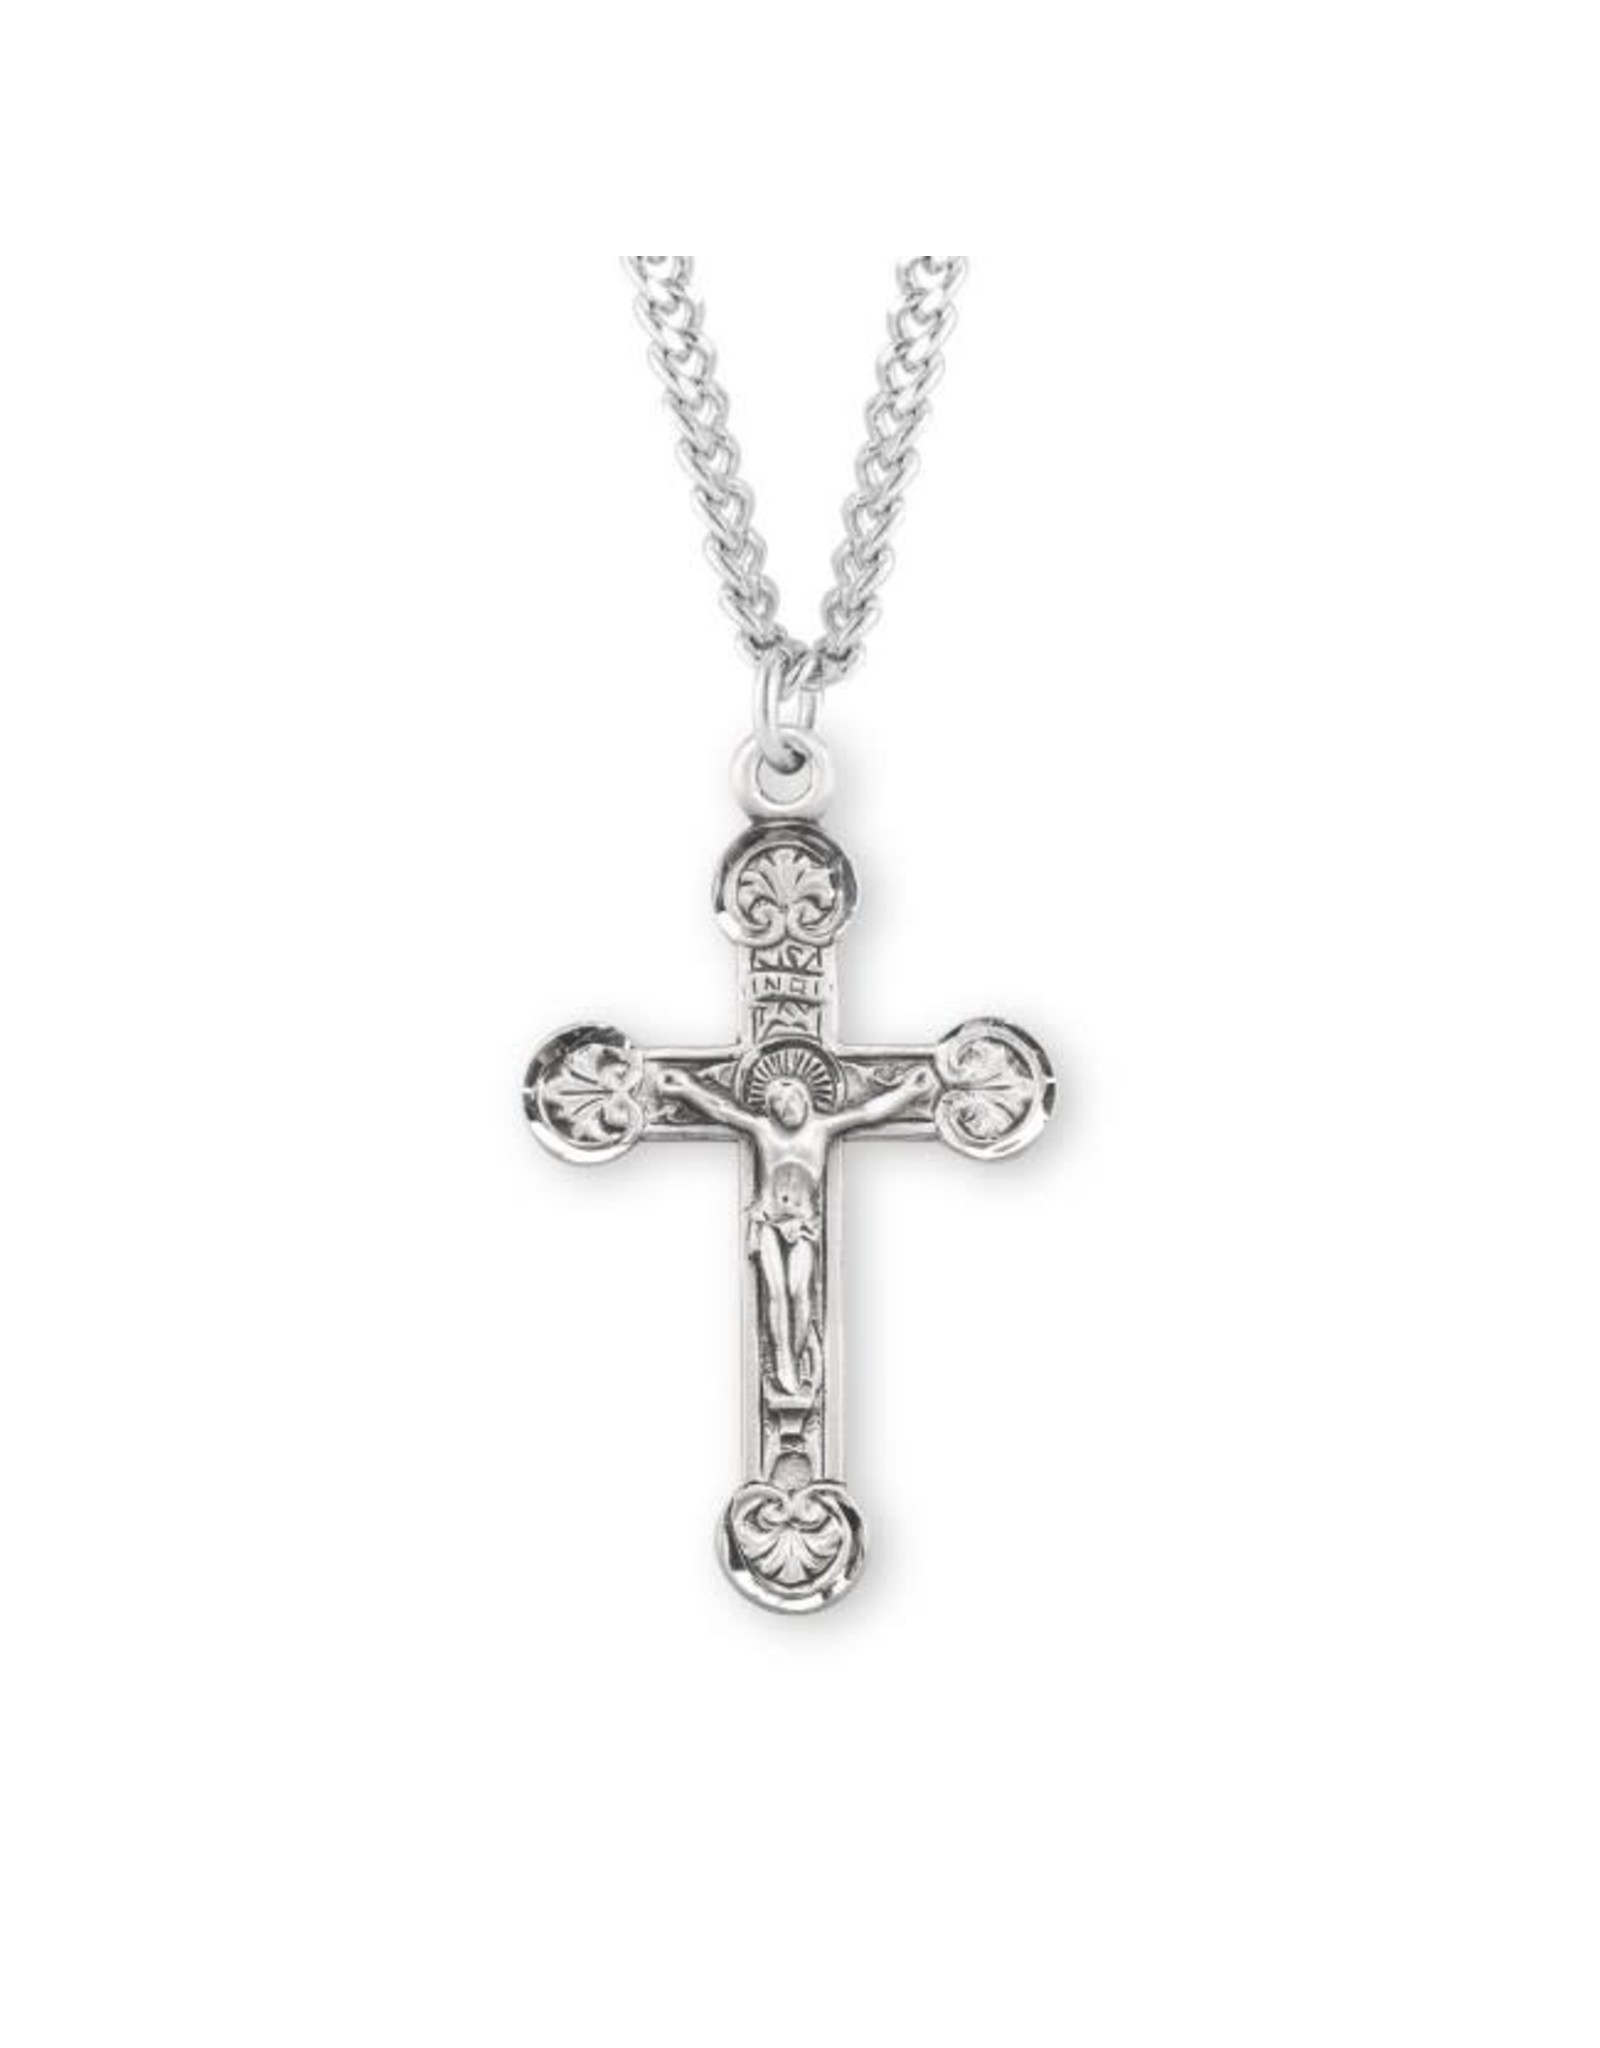 """HMH 1 1/2"""" Sterling Silver Crucifix with Flourette Tips in Antique Satin Finish Hand Engraved on 24"""" Chain, Boxed"""